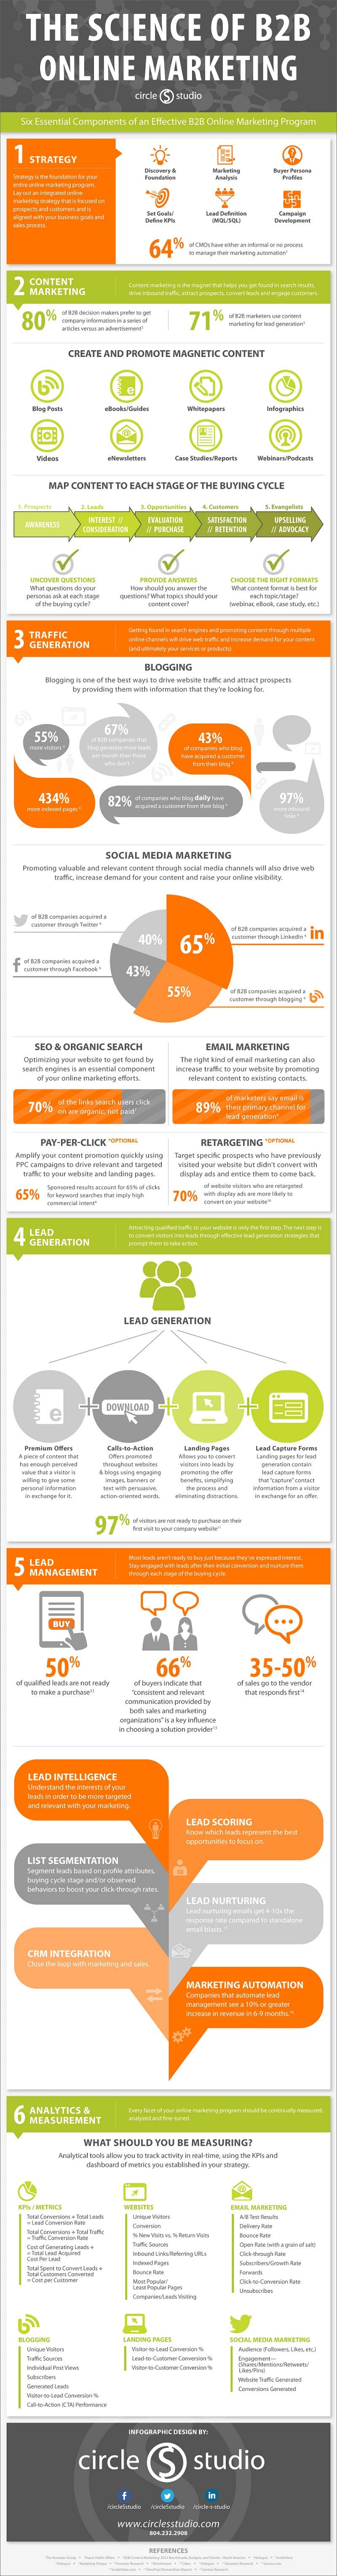 the-science-of-b2b-online-marketing-infographic